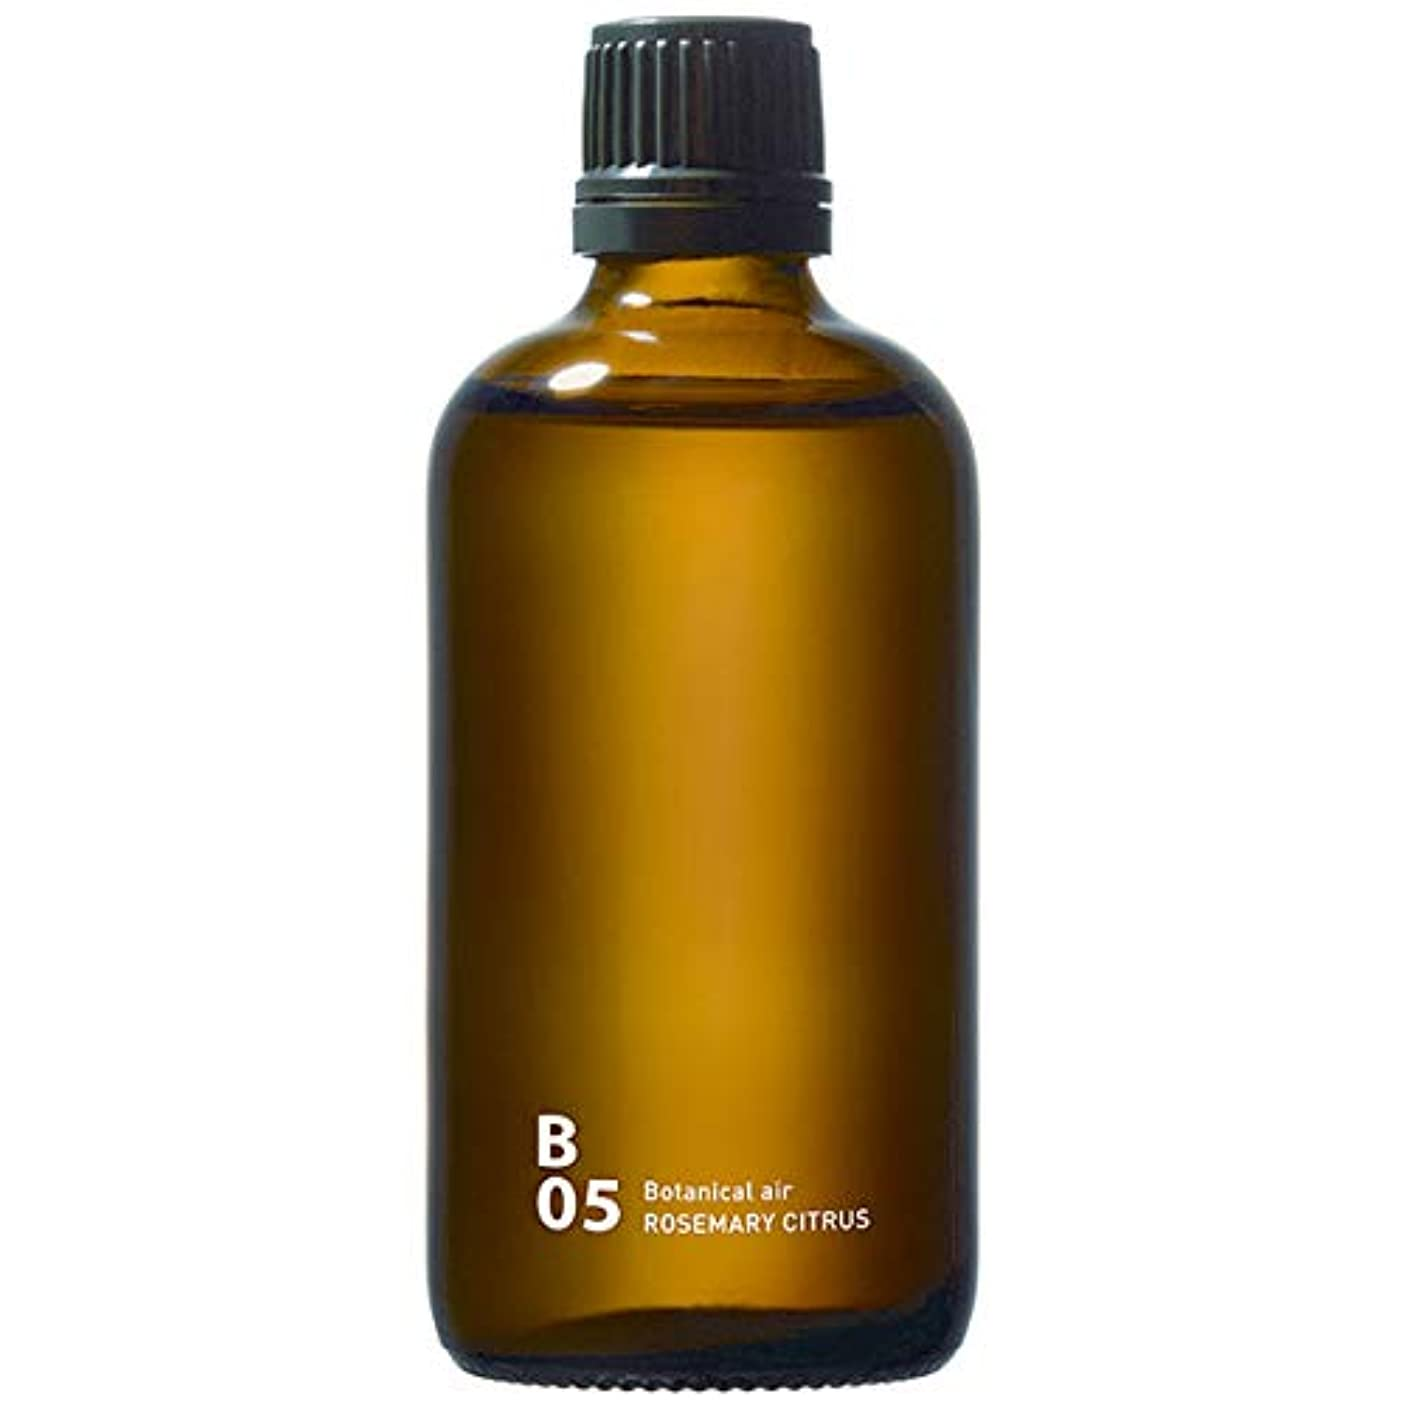 B05 ROSEMARY CITRUS piezo aroma oil 100ml